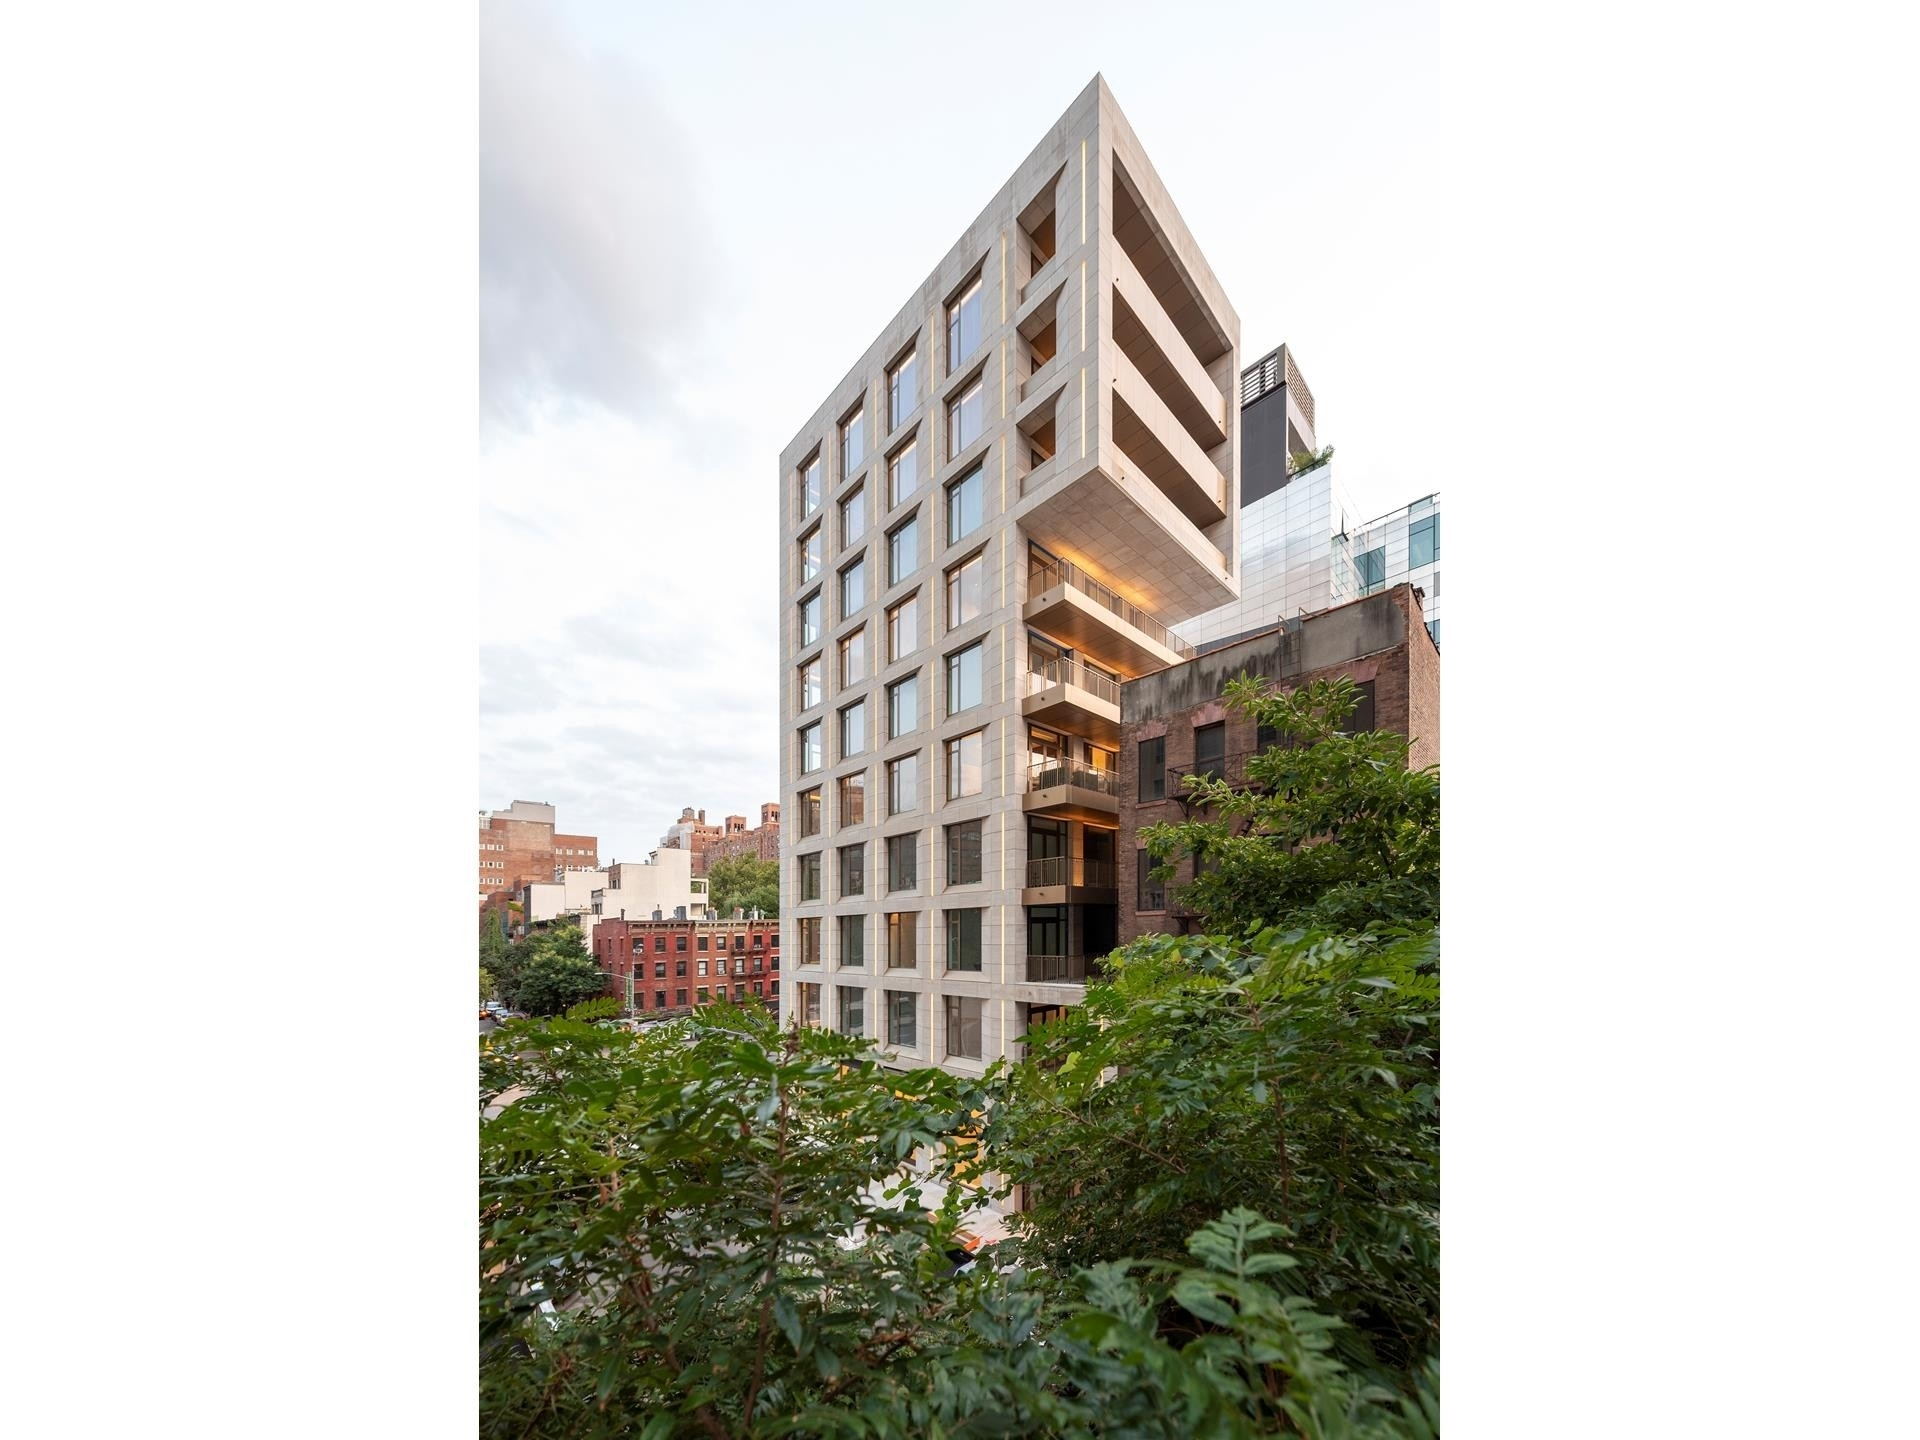 24. Condominiums for Sale at 500 W 25TH ST , PH Chelsea, New York, NY 10001